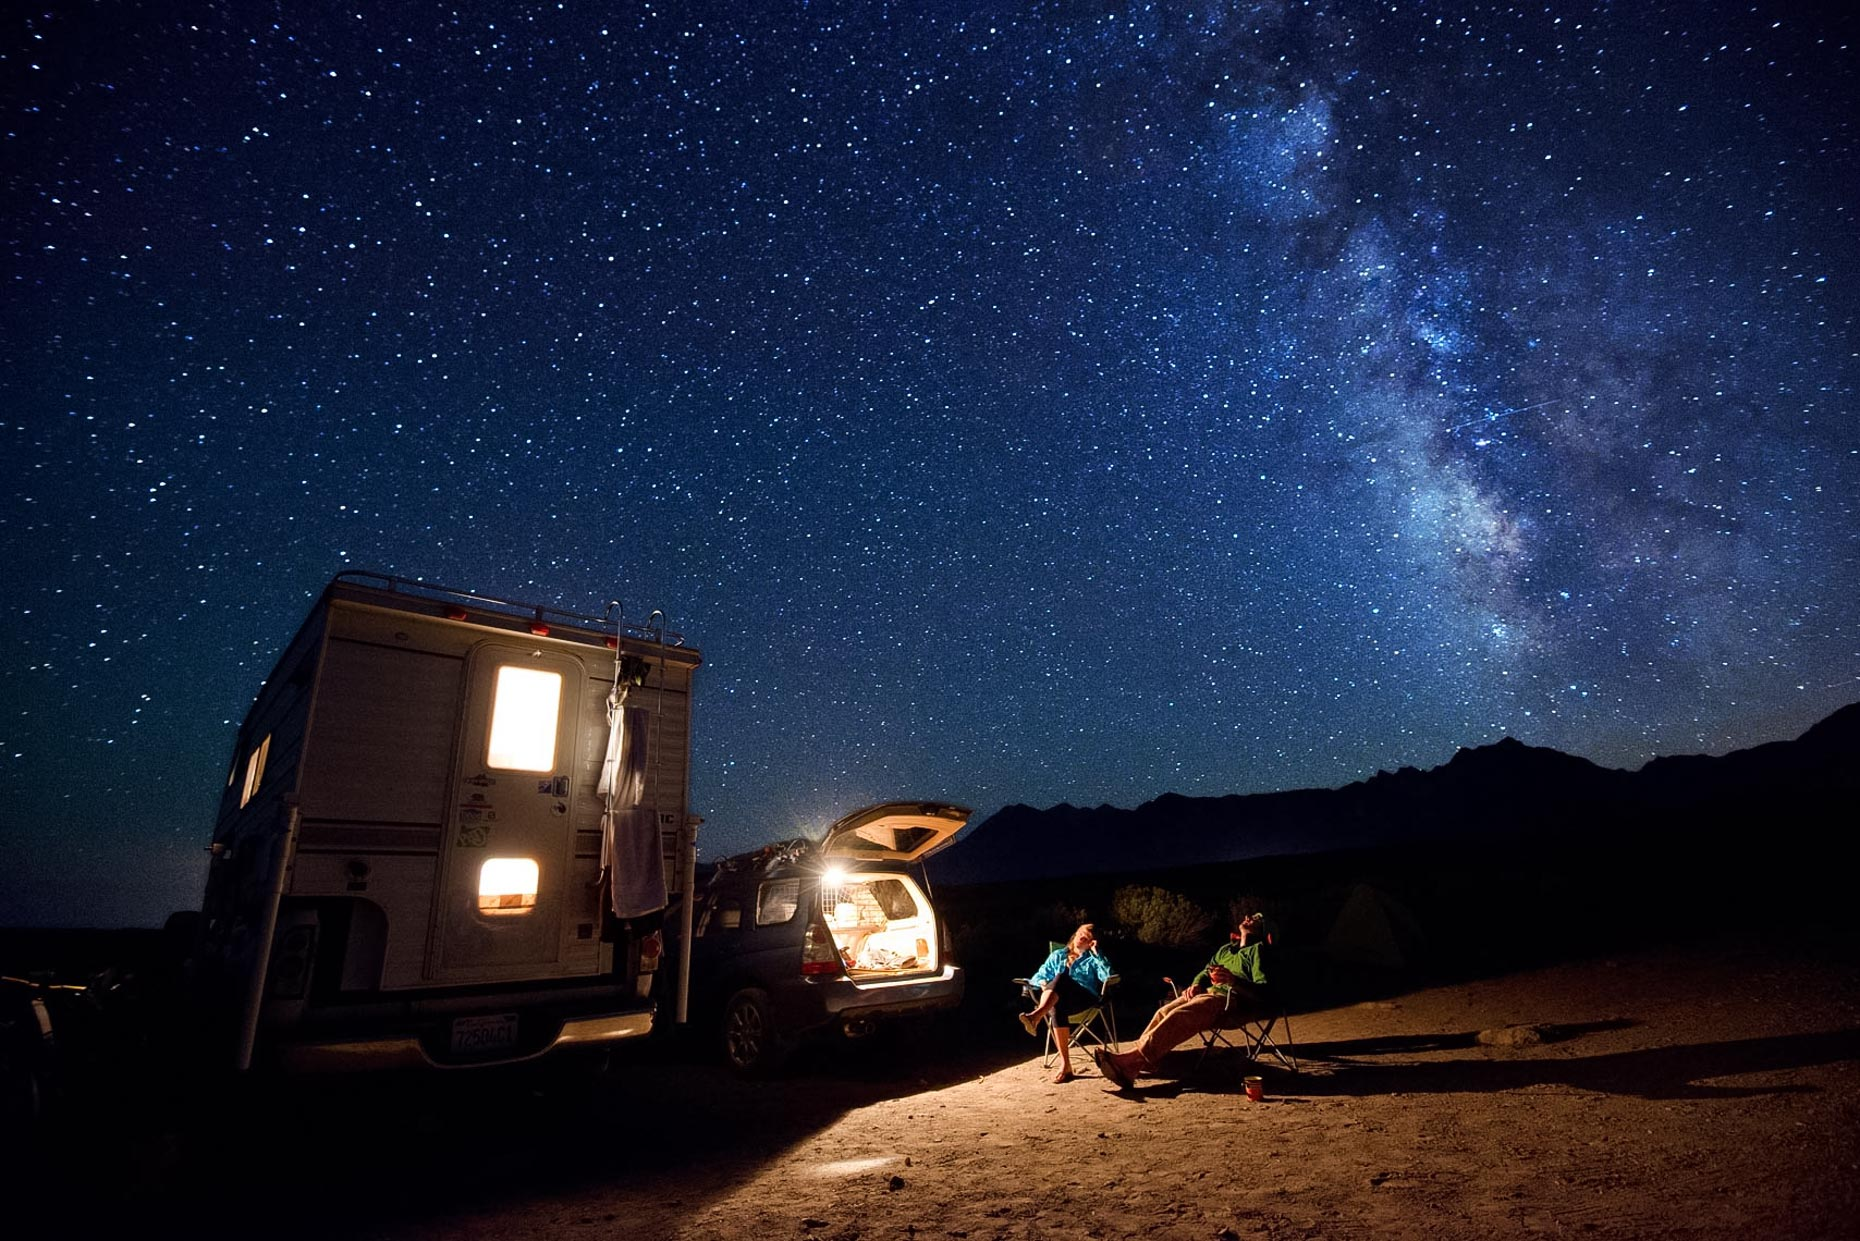 Night Sky - Car Camping Under the Stars And Milky Way - Eastern Sierra Nevada, California